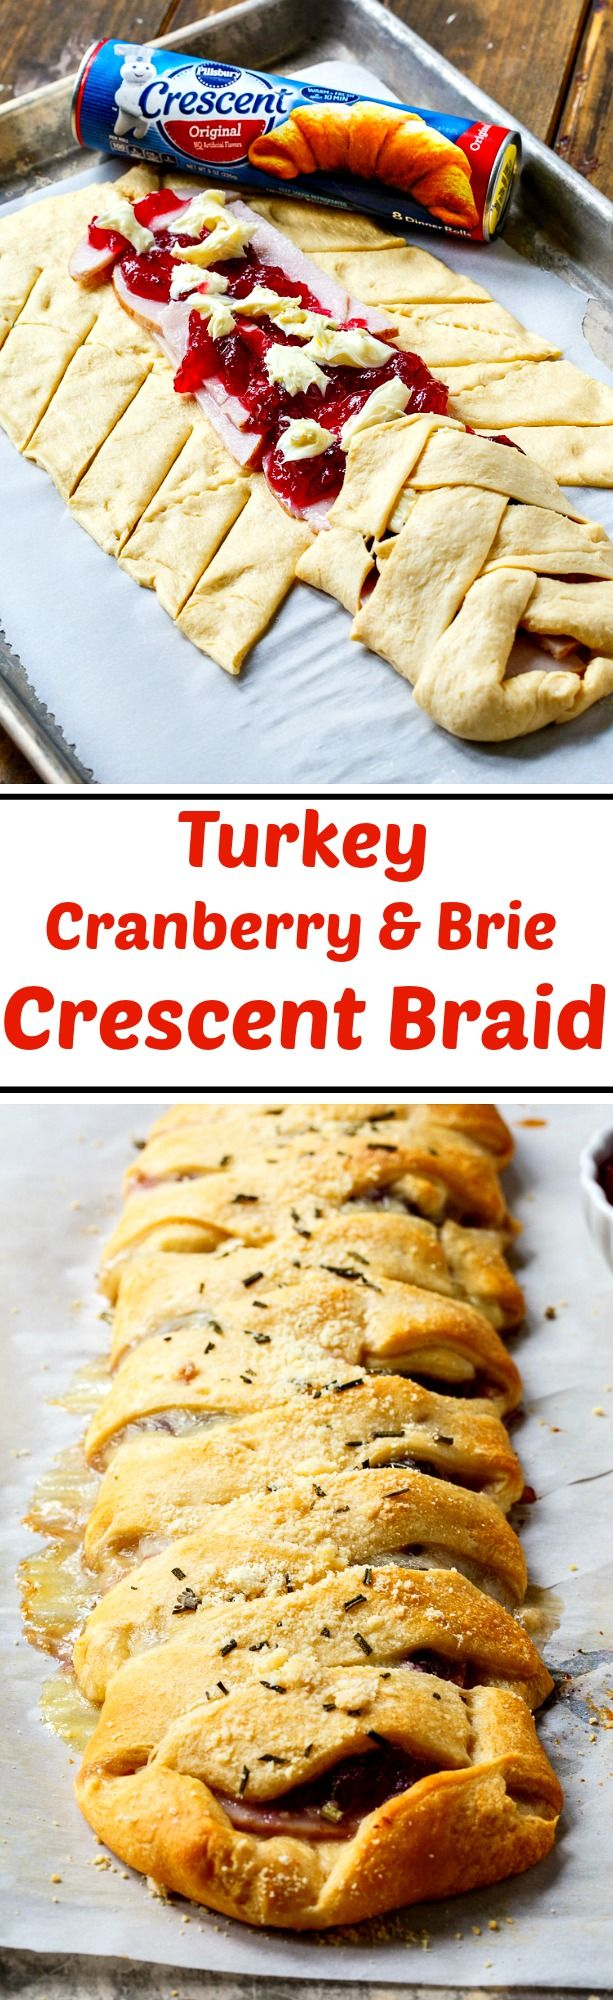 Turkey, Cranberry, and Brie Crescent Braid. So easy to make with Pillsbury Crescents! #ad